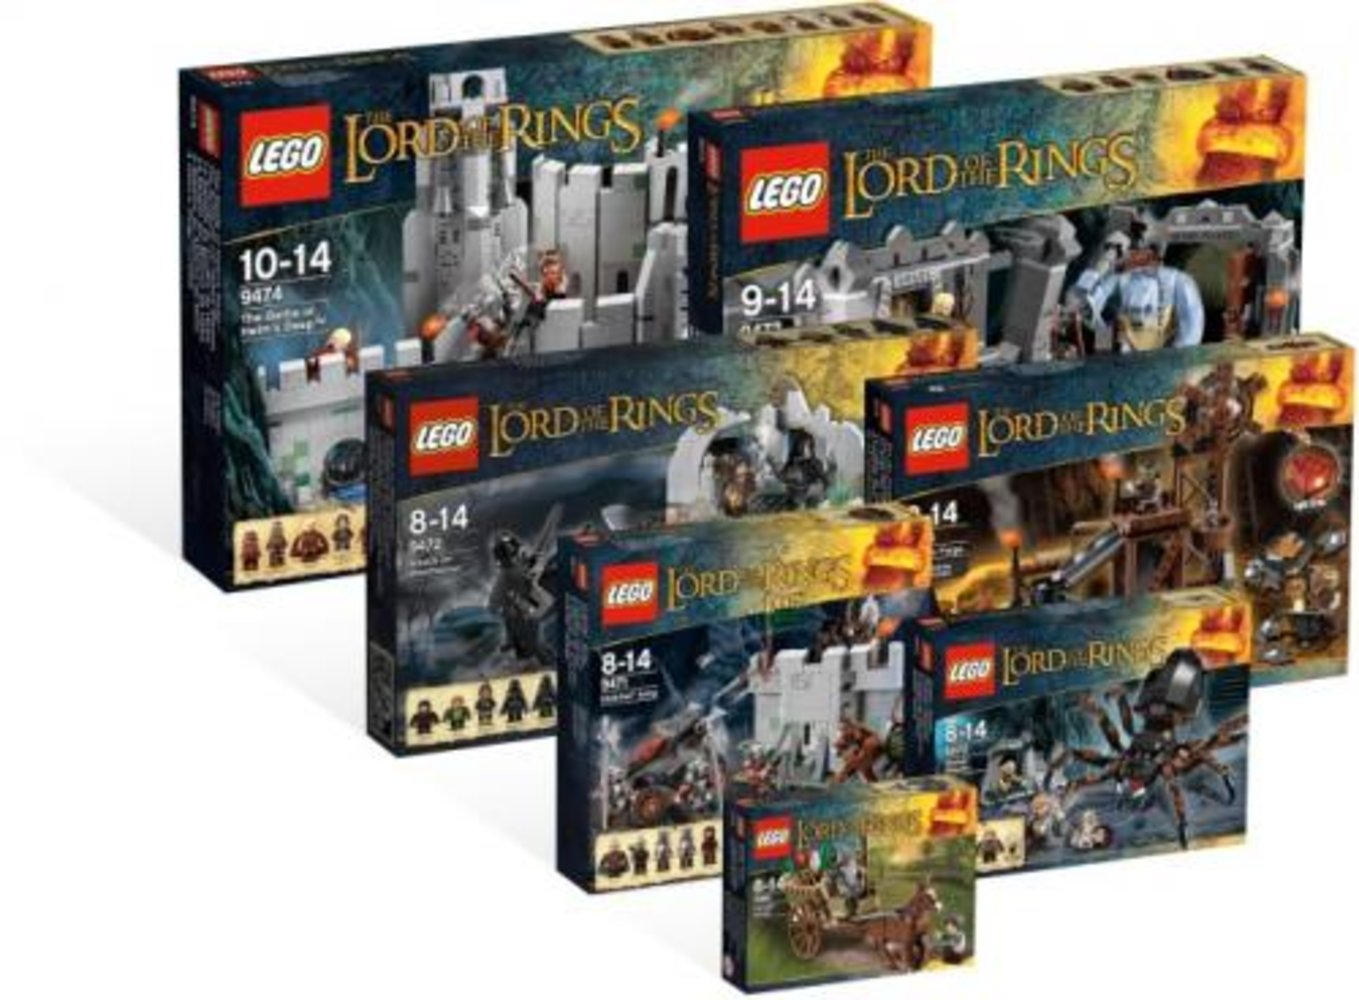 The Lord of the Rings Collection